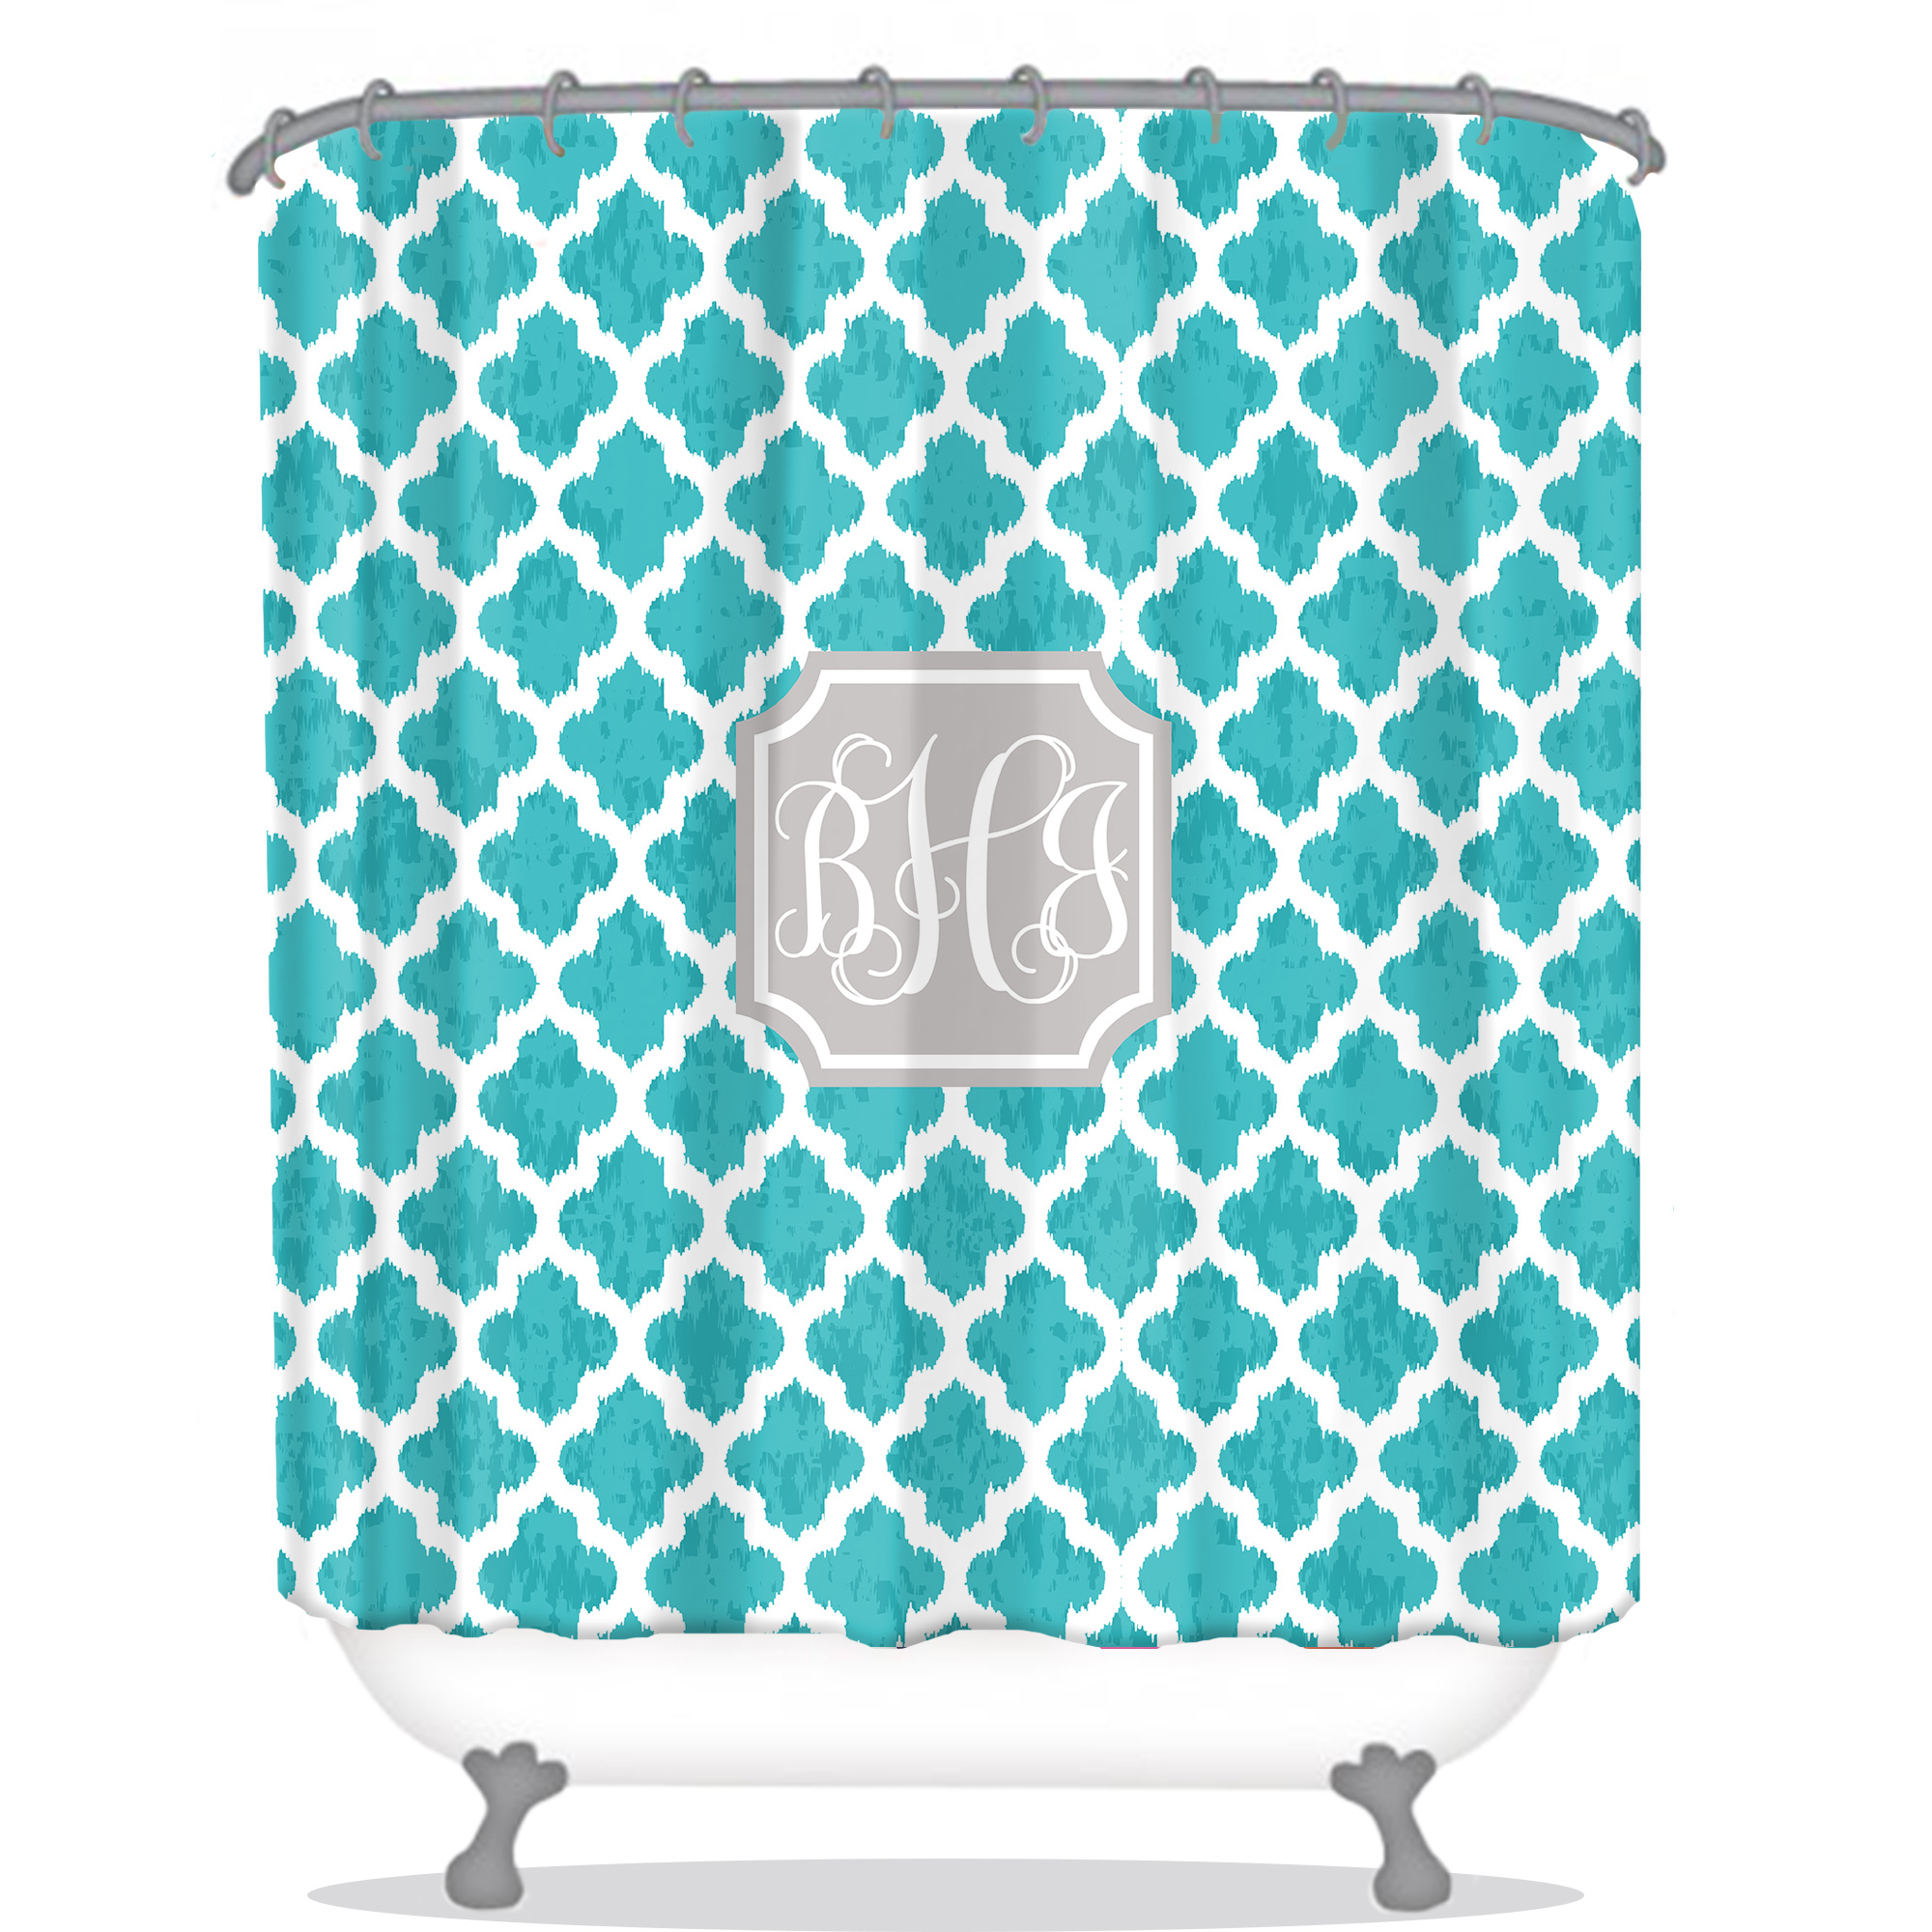 Aqua Chevron Shower Curtain - Chevron ikat personalized shower curtain